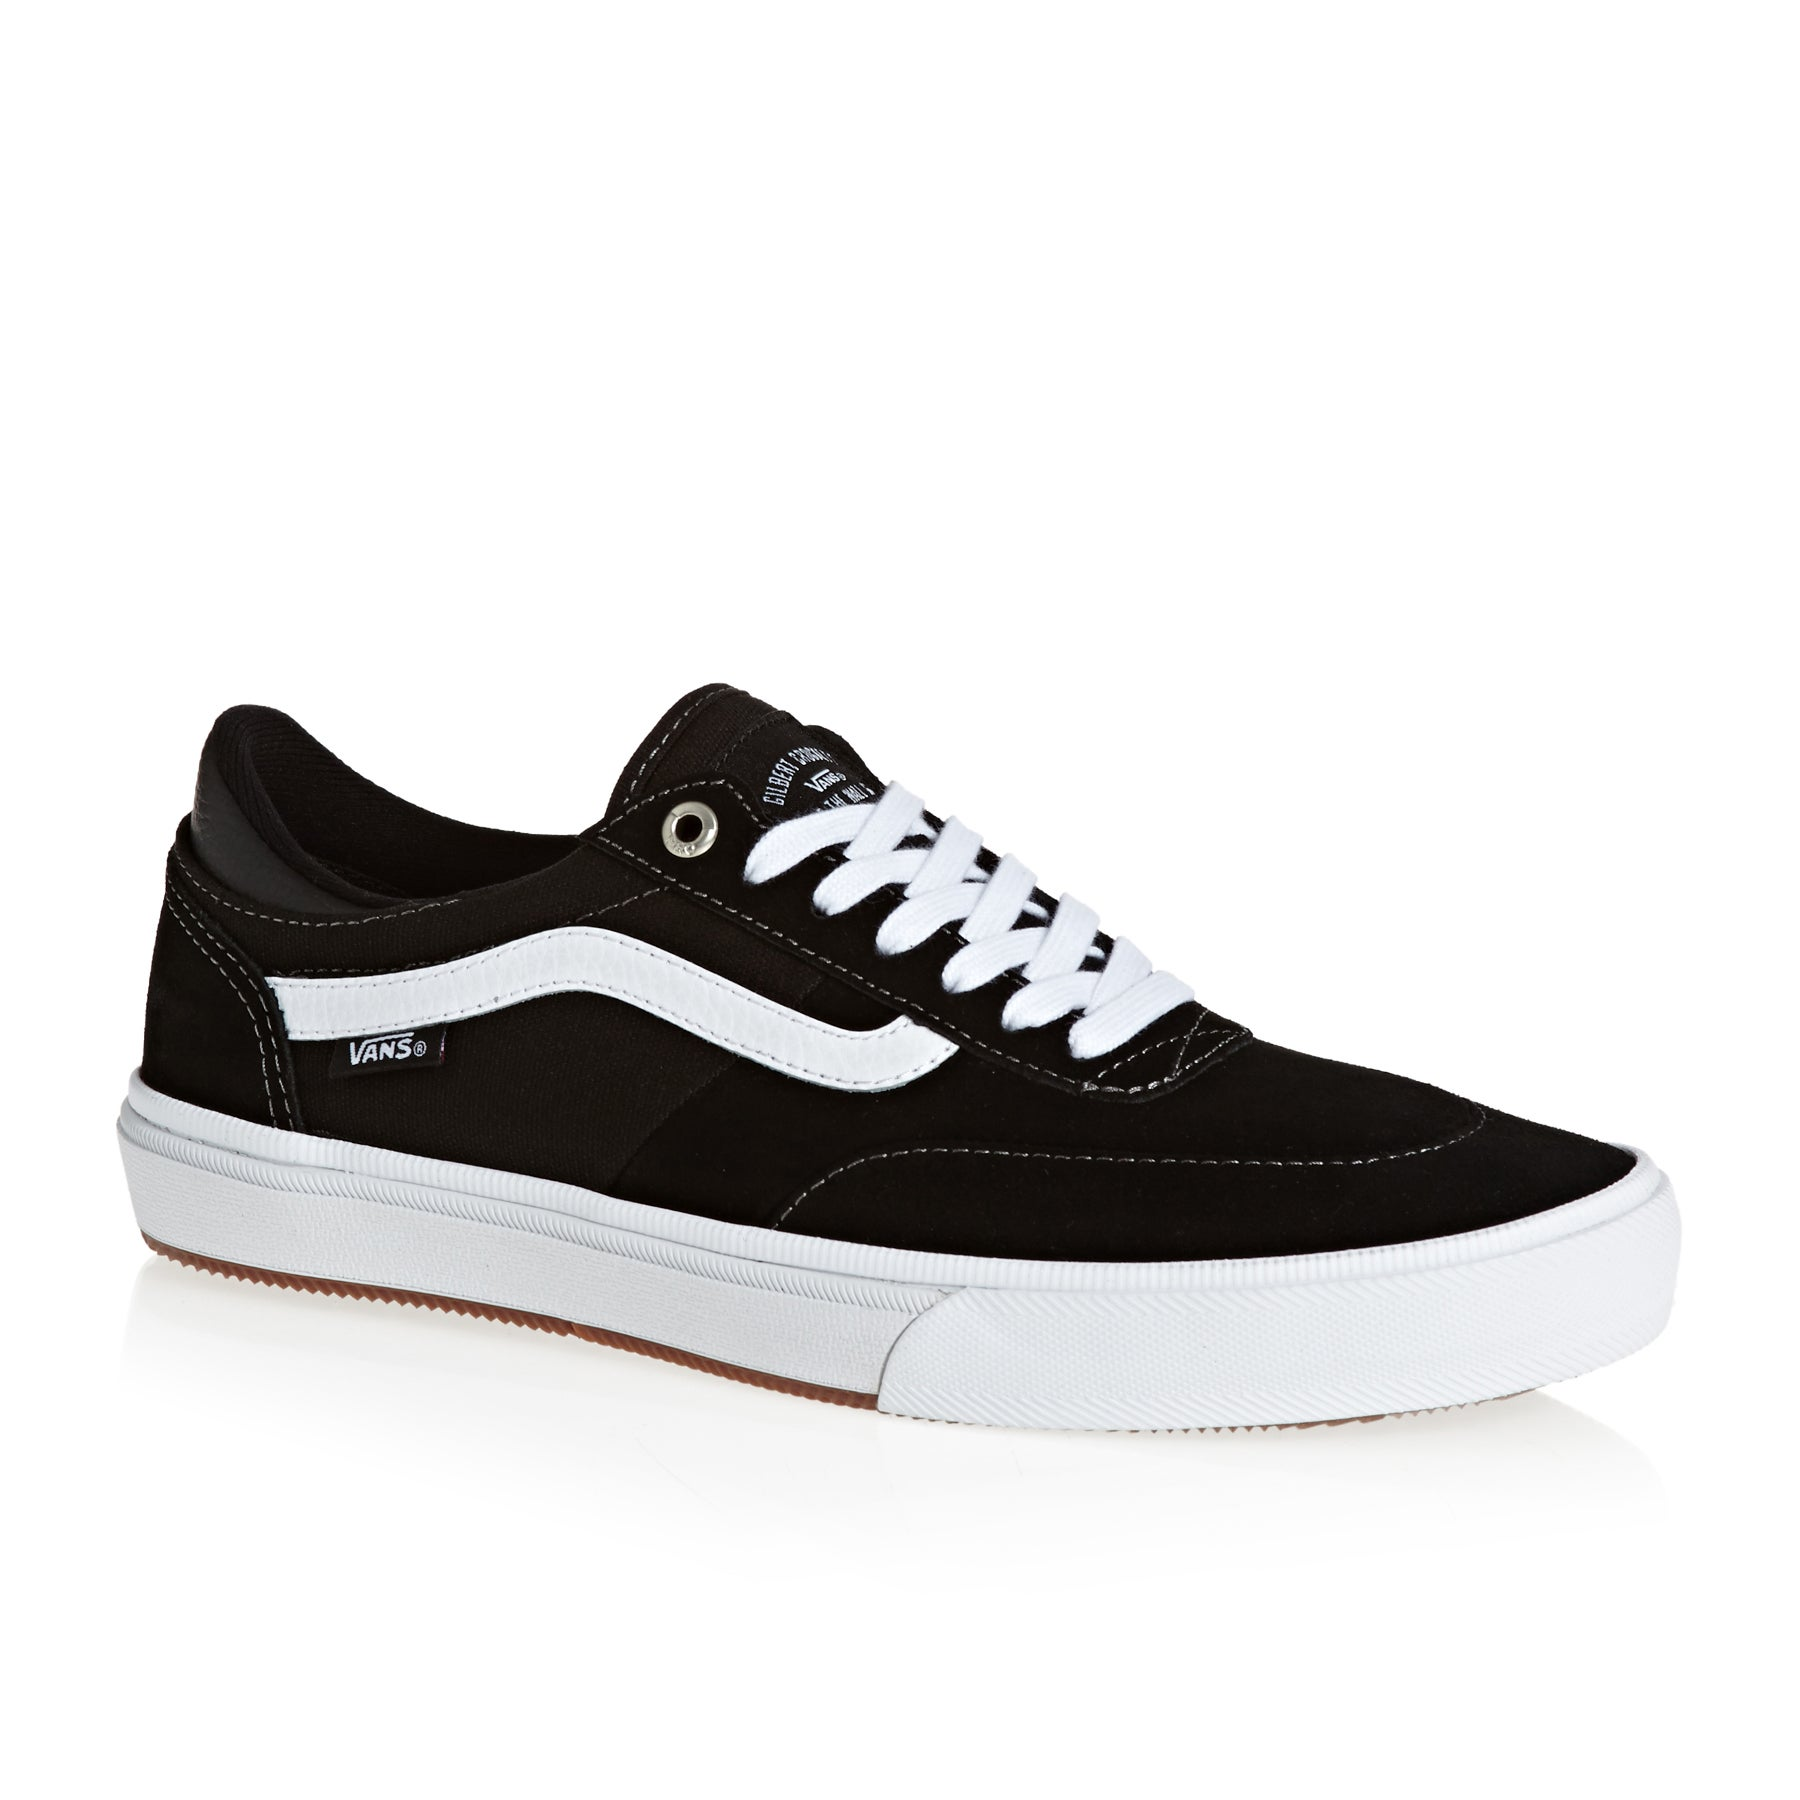 1f9235e9a4 Vans Gilbert Crockett 2 Pro Shoes available from Surfdome